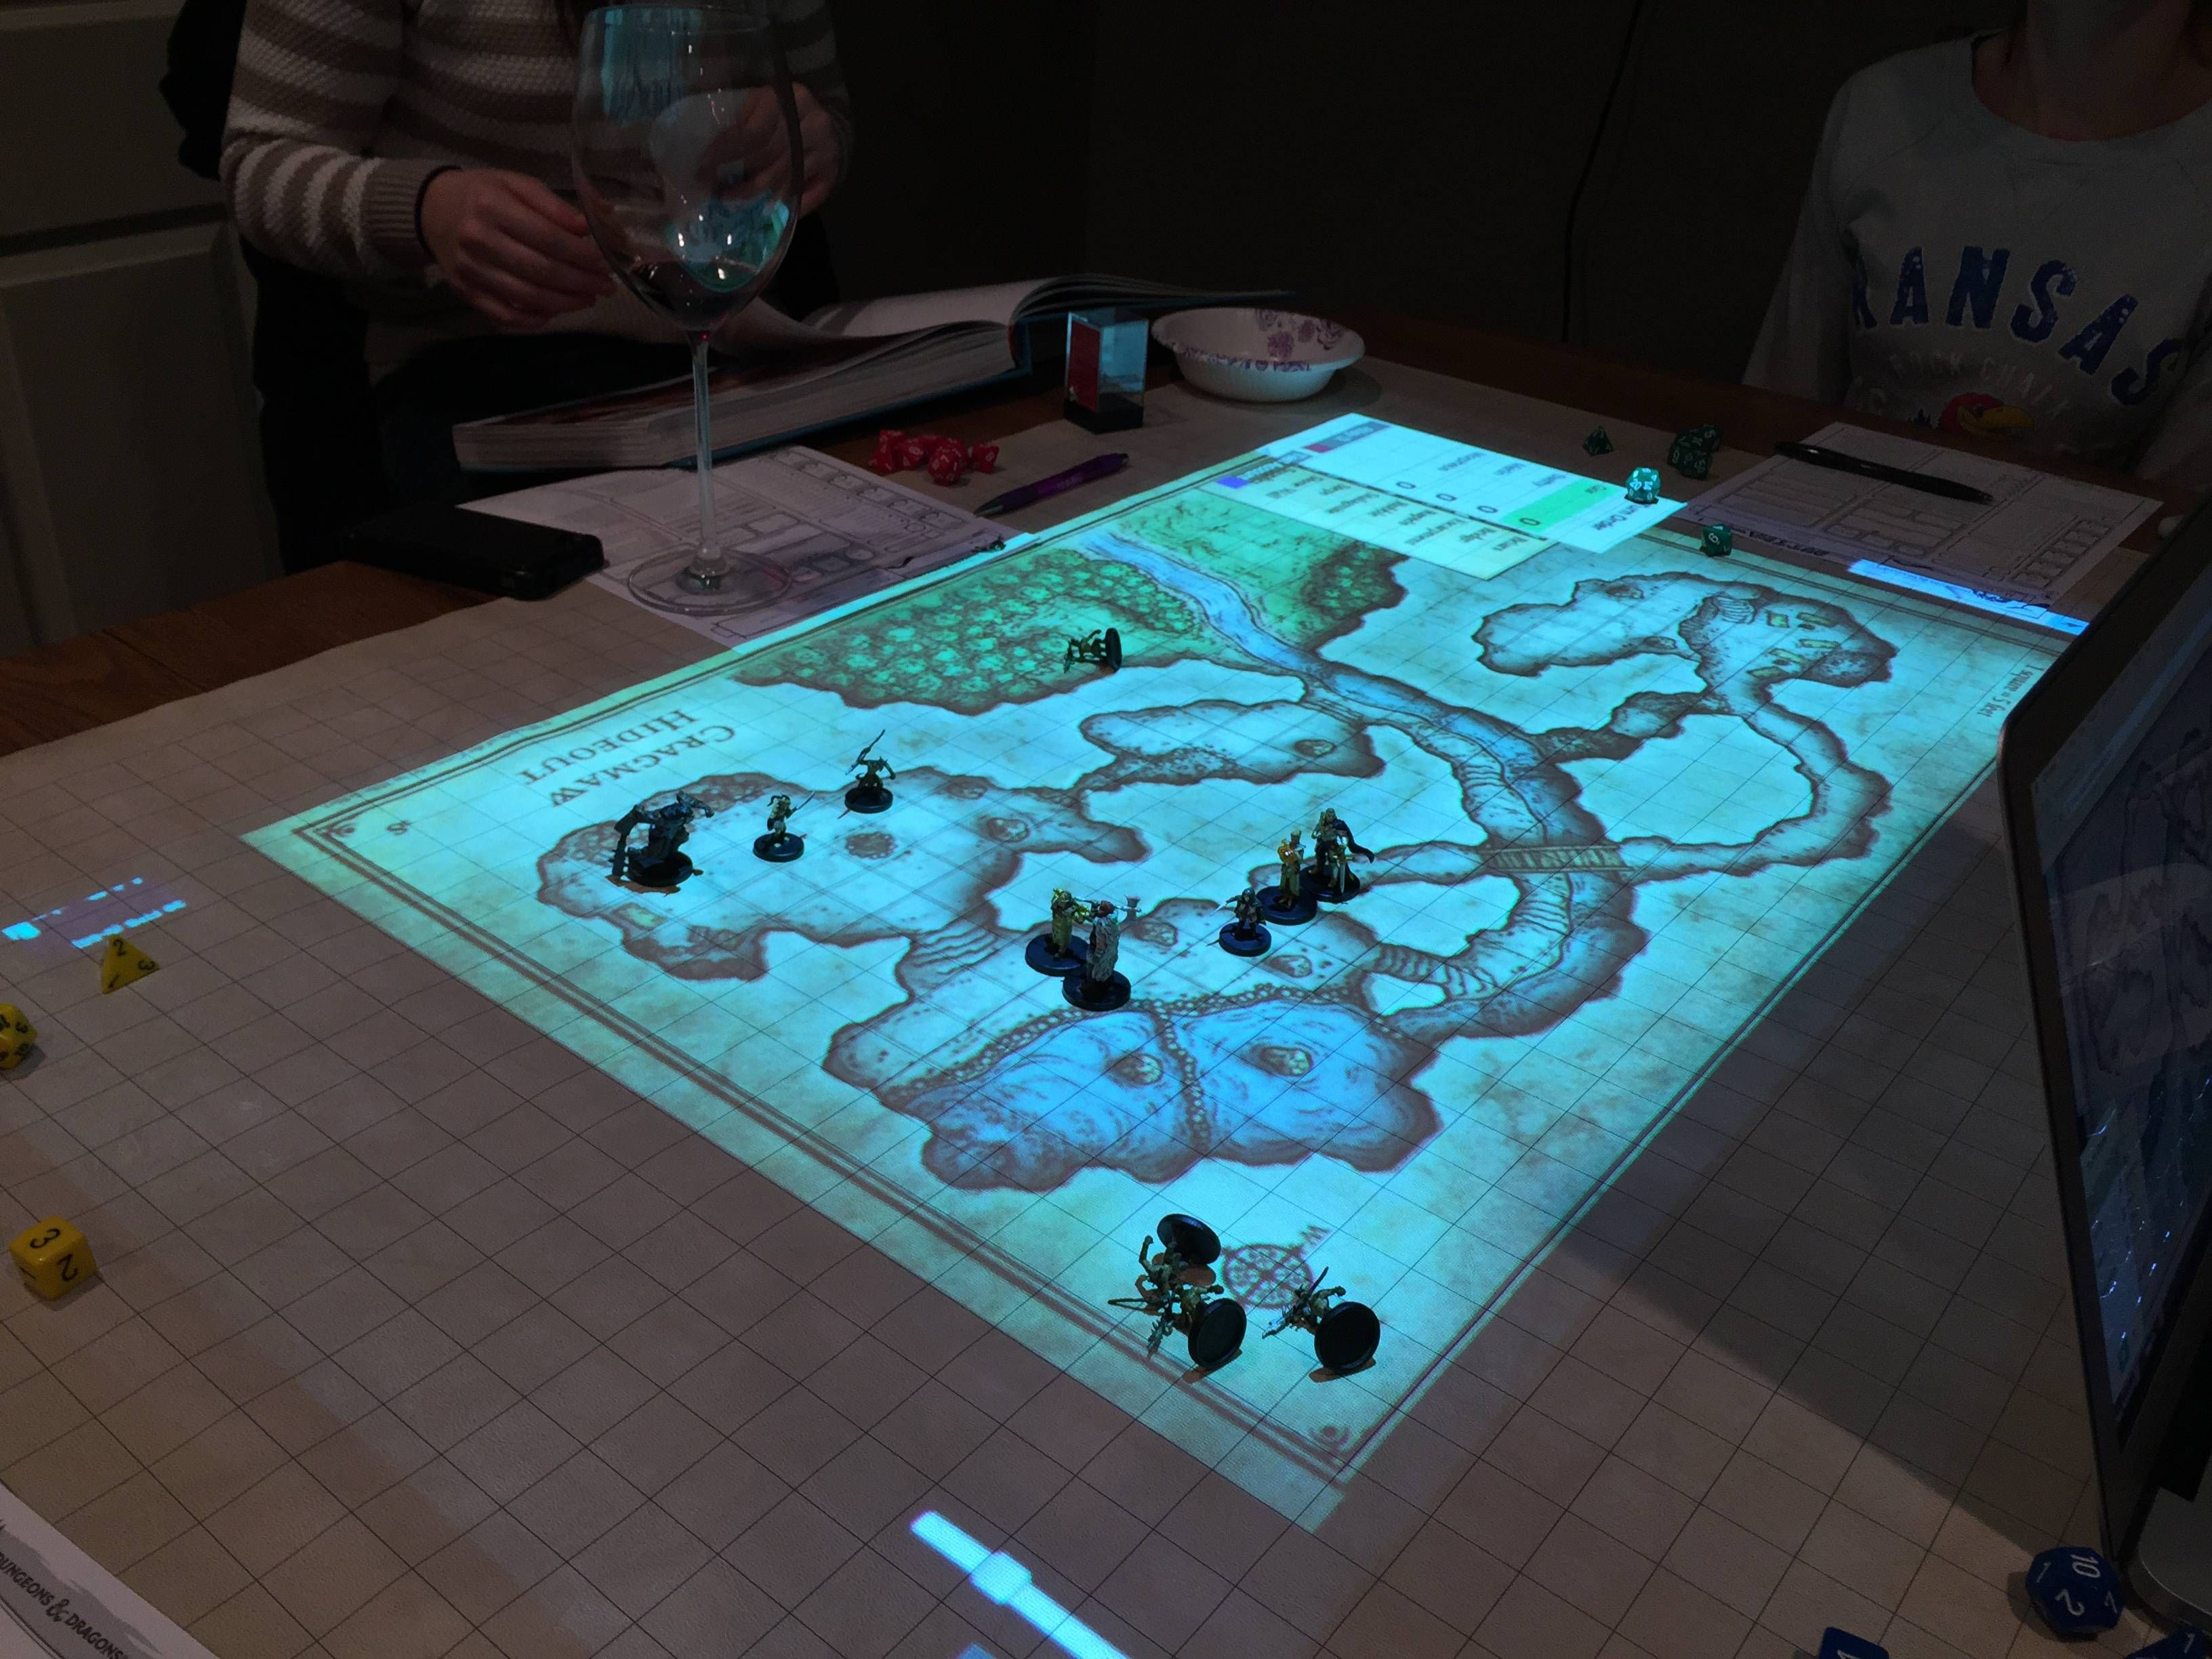 D Amp D With Minis On Digital Mat Tabletop Tabletop Rpg